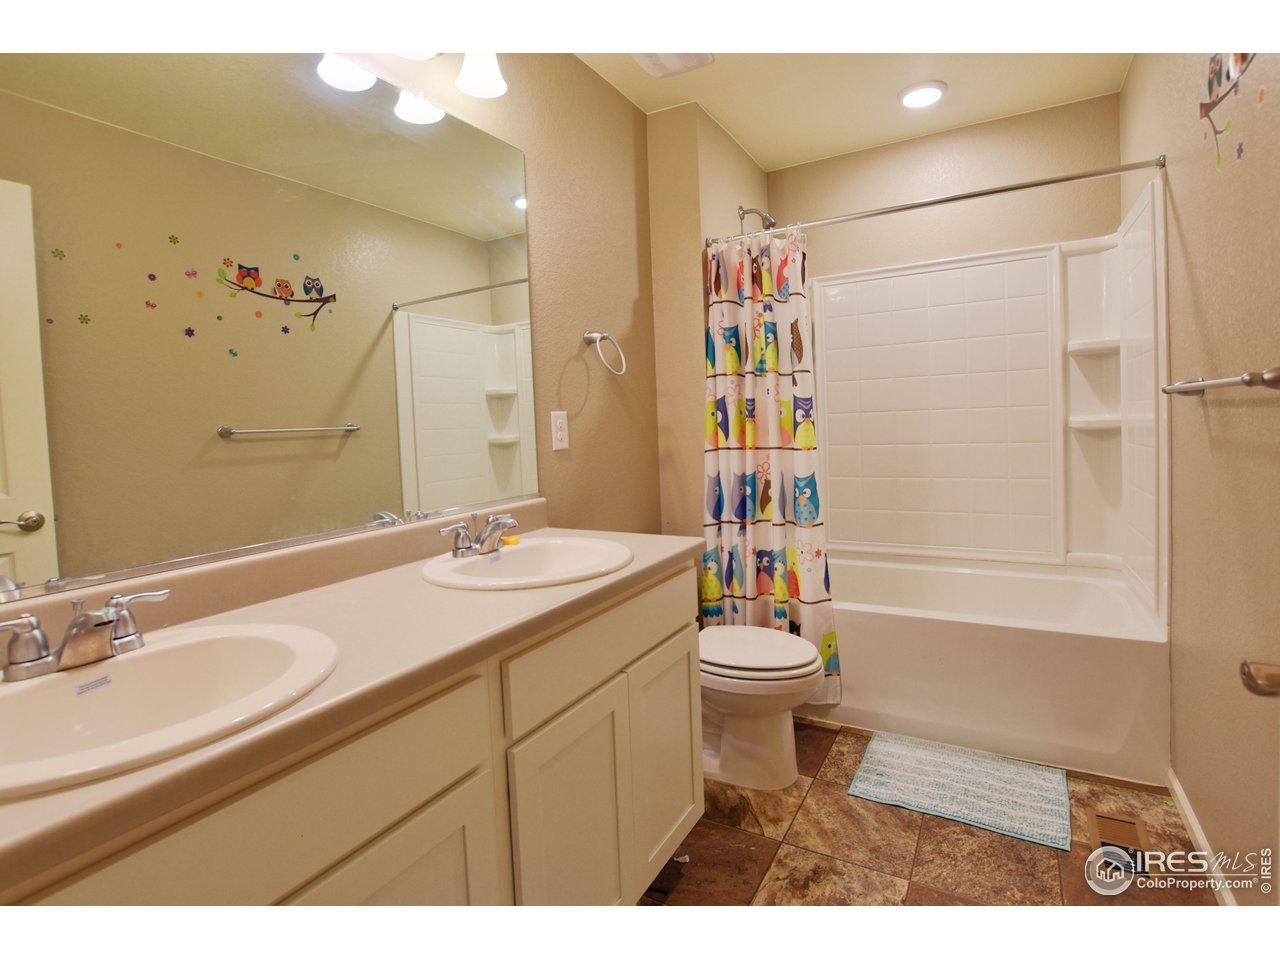 Upstairs double sink